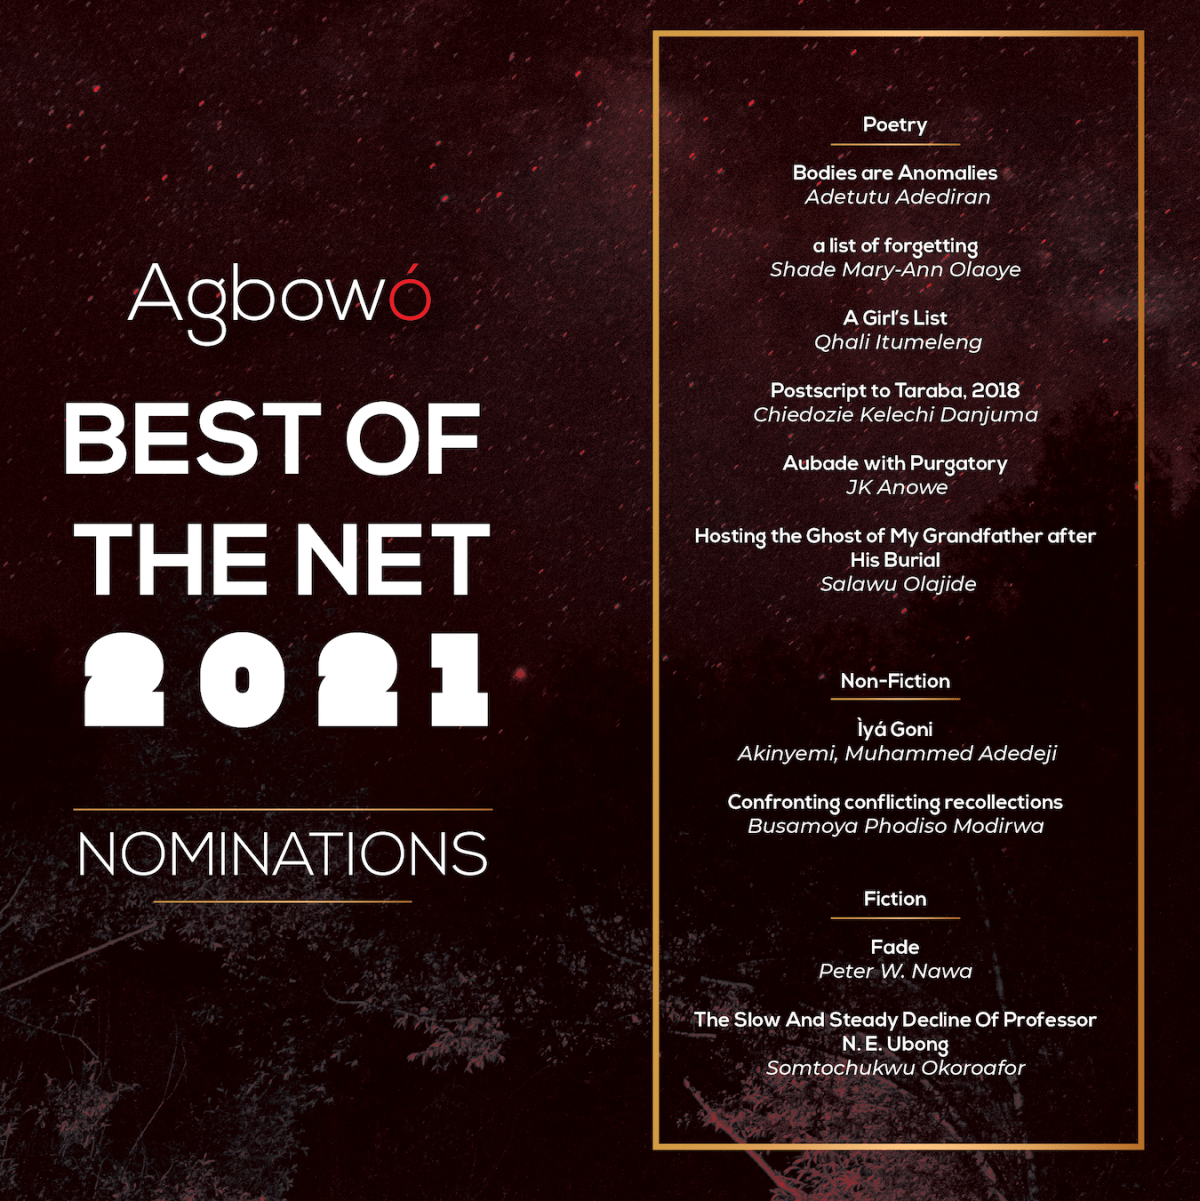 Best of the Net Nominations 2021 Agbowo African Art